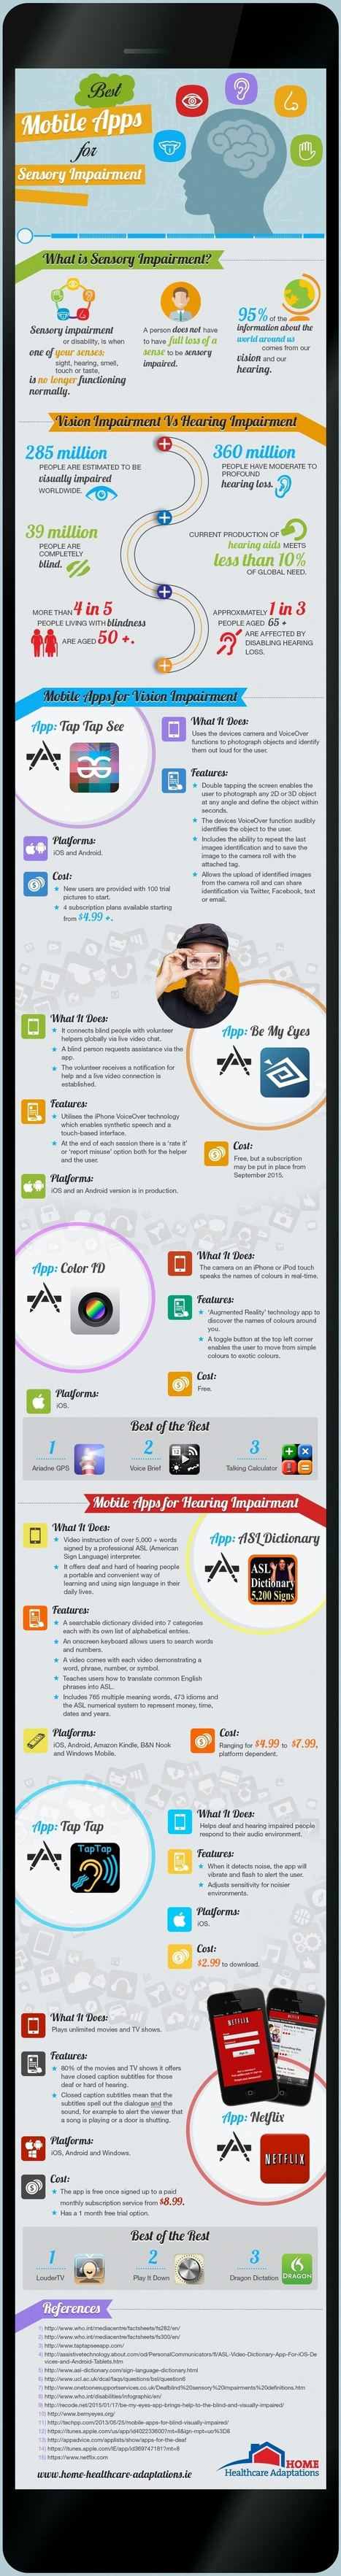 Best Mobile Apps for Sensory Impairment Infographic - e-Learning Infographics | UDL & ICT in education | Scoop.it